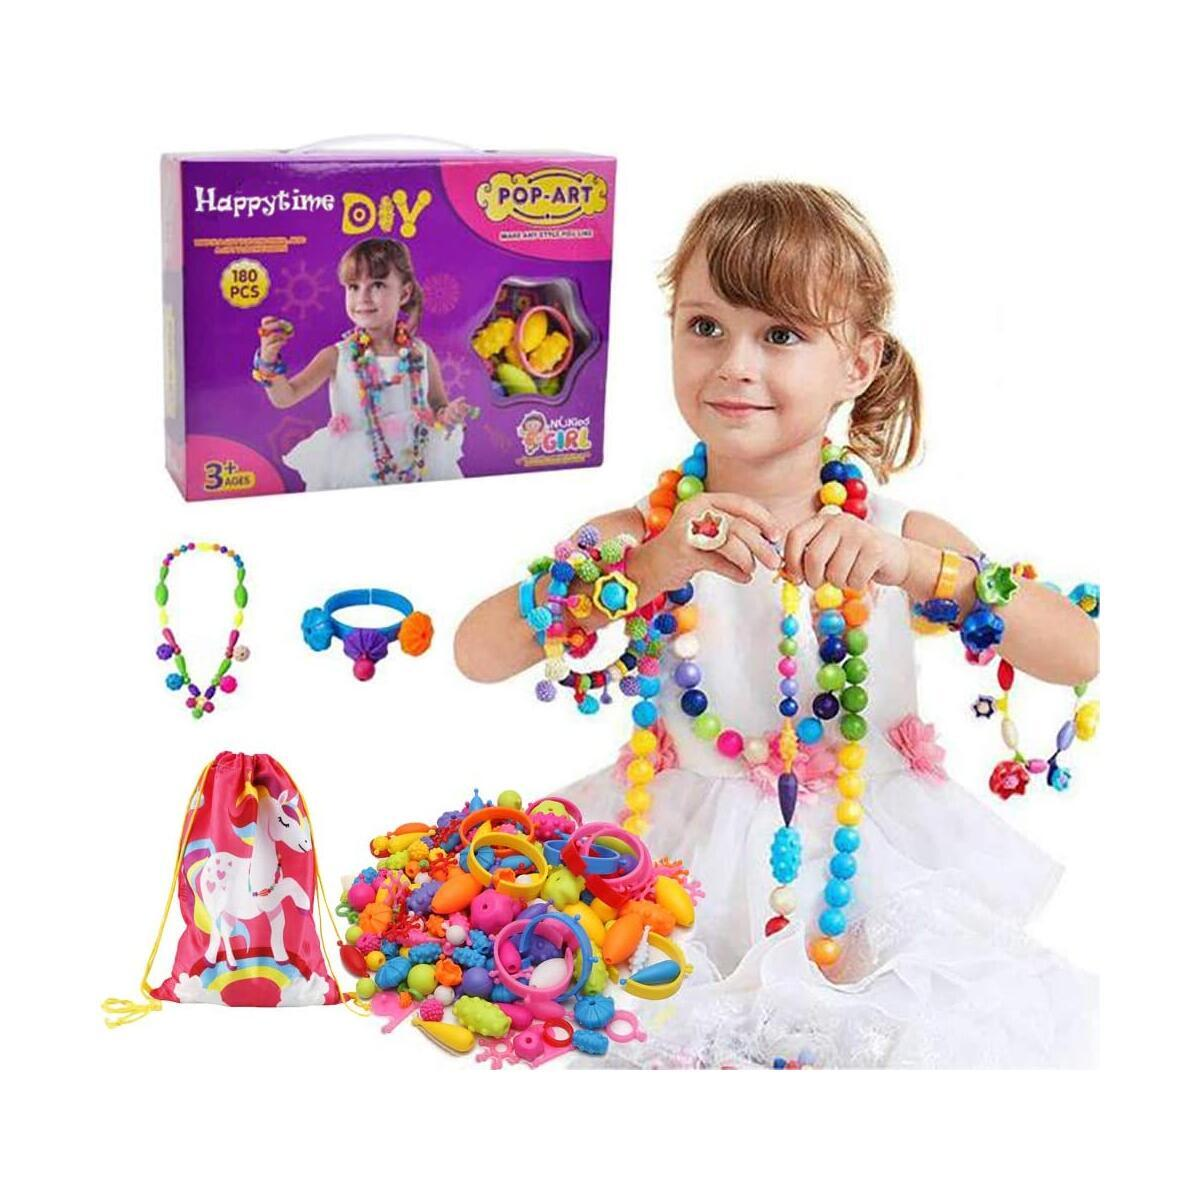 Happytime Snap Pop Beads Girls Toy 180 Pieces Jewelry Marking Kit Fashion Fun for Necklace Ring Bracelet Art Kids Crafts Birthday Fun Gifts Toys for 3, 4, 5, 6, 7 ,8 Year Old Kids Girls